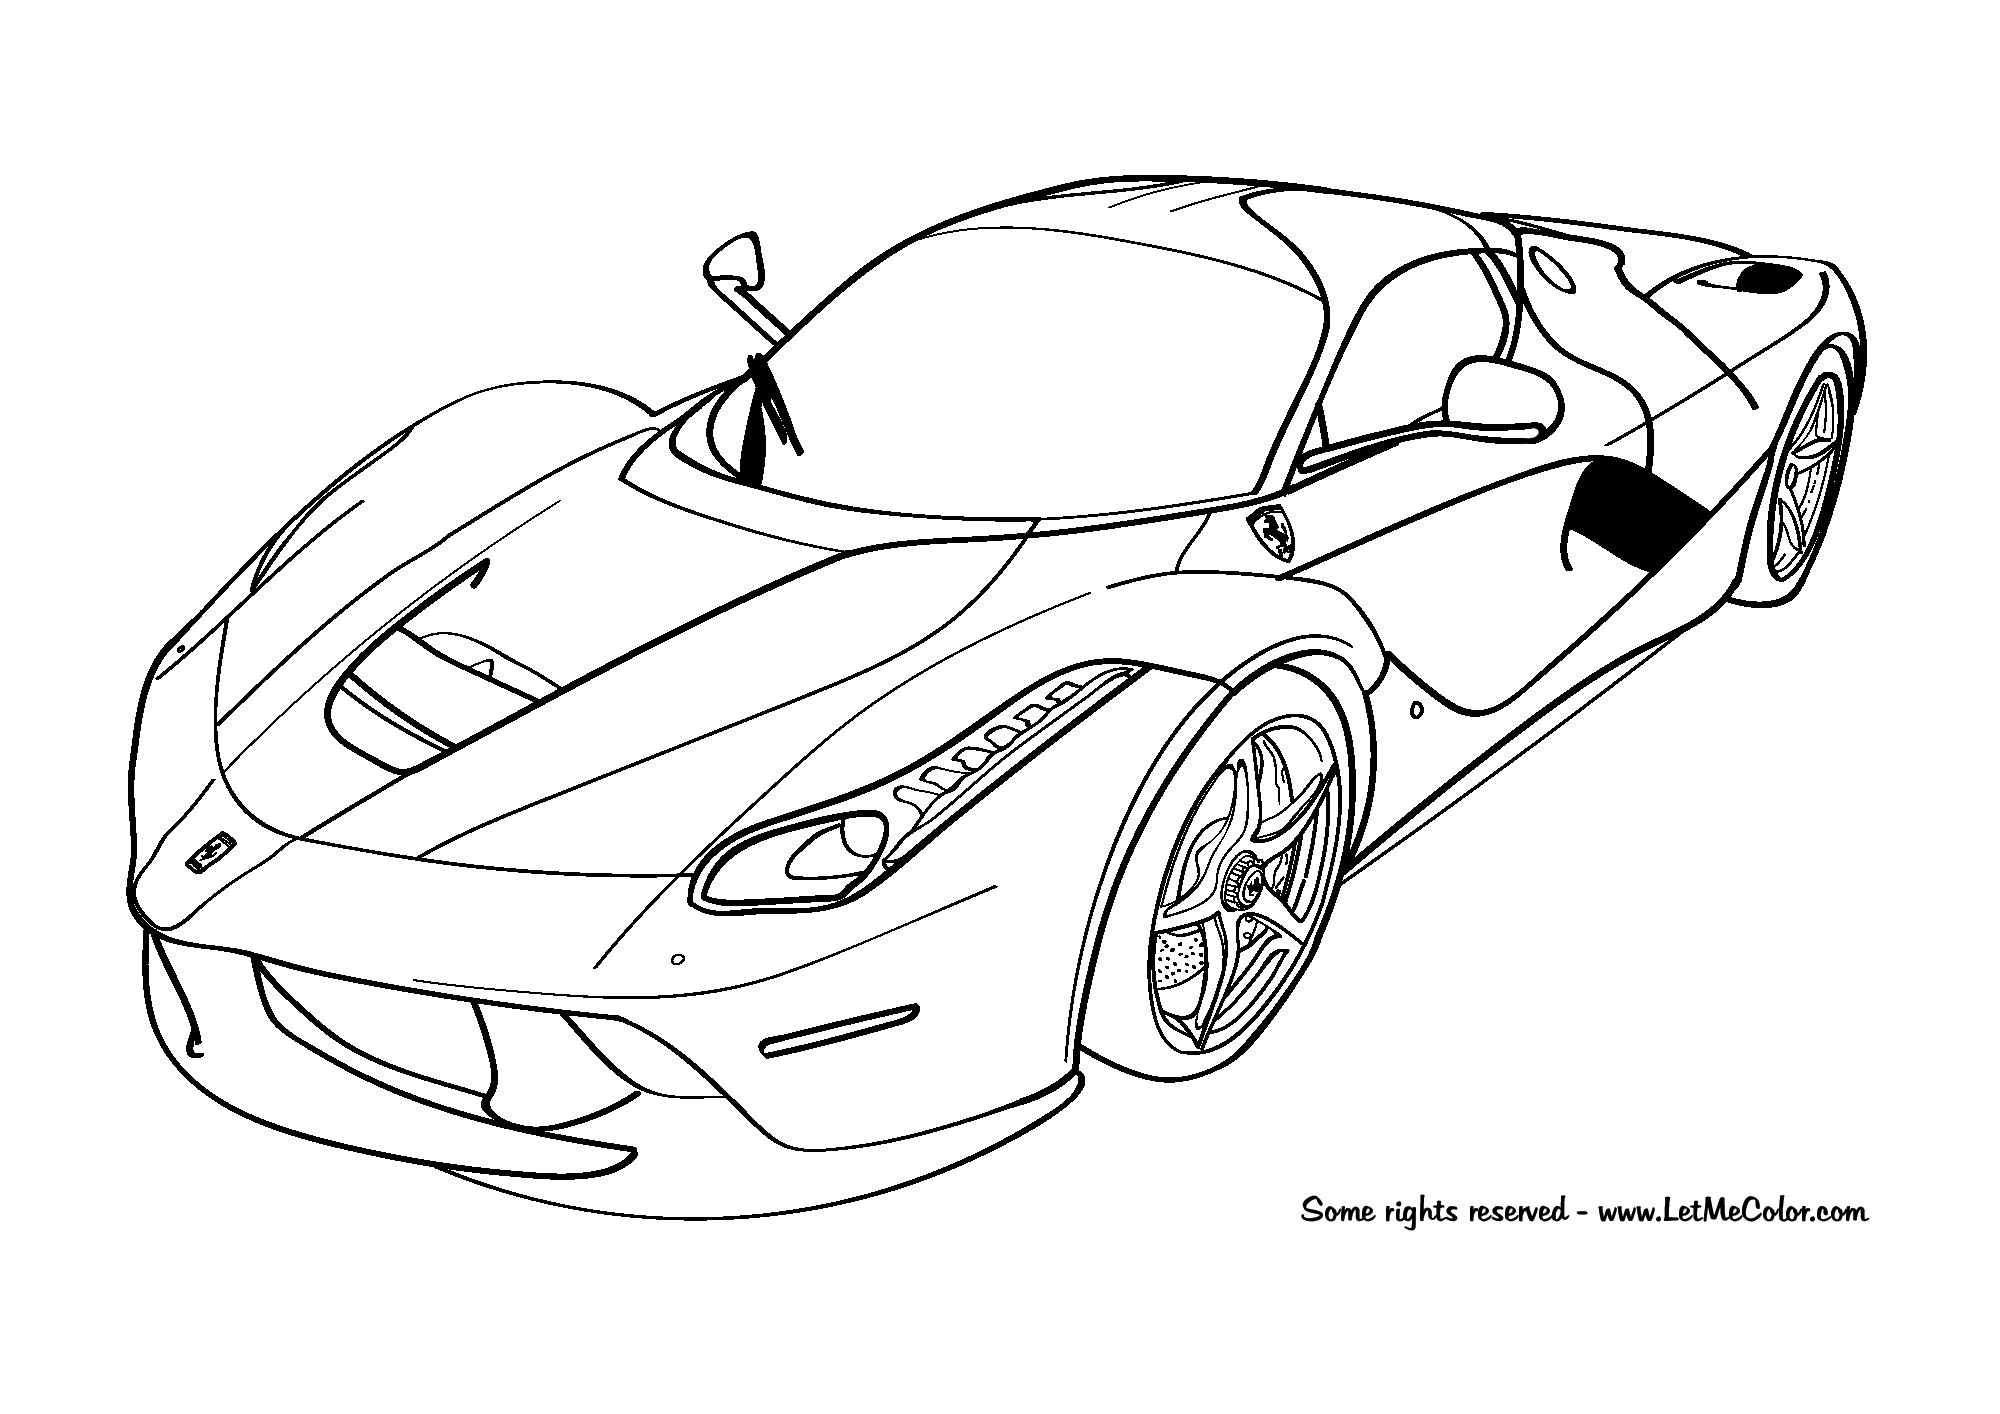 Ferrari Laferrari Coloring Pages Free Cars Coloring Pages Sports Coloring Pages Race Car Coloring Pages